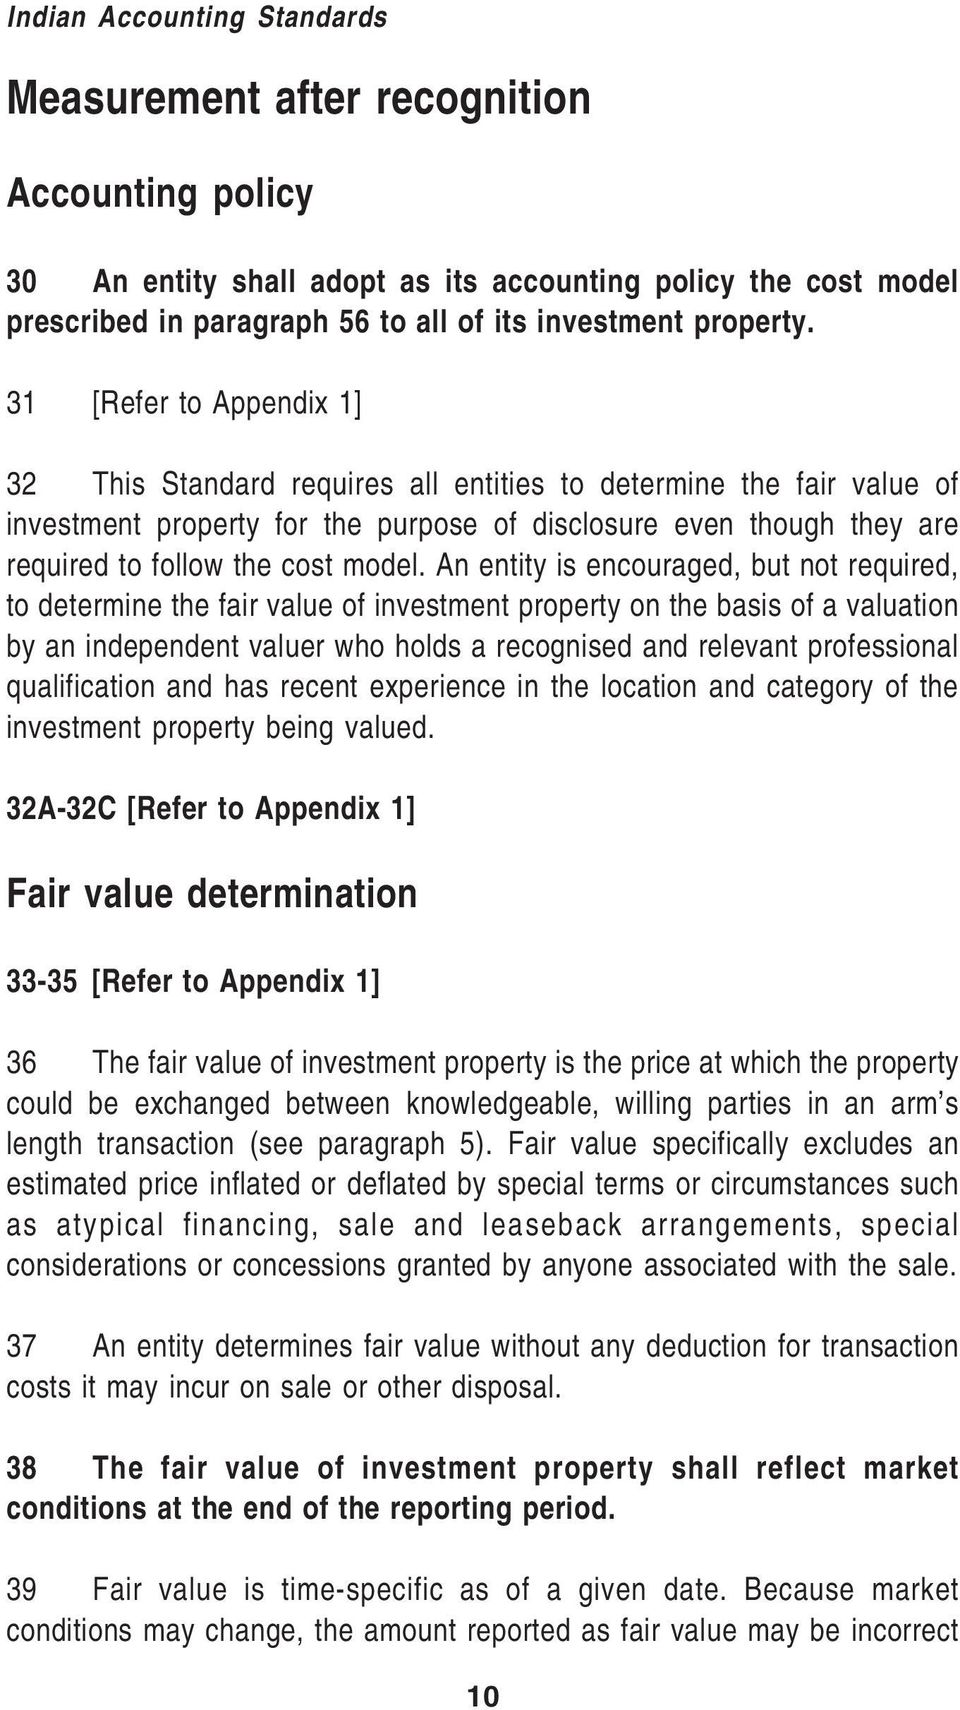 31 [Refer to Appendix 1] 32 This Standard requires all entities to determine the fair value of investment property for the purpose of disclosure even though they are required to follow the cost model.